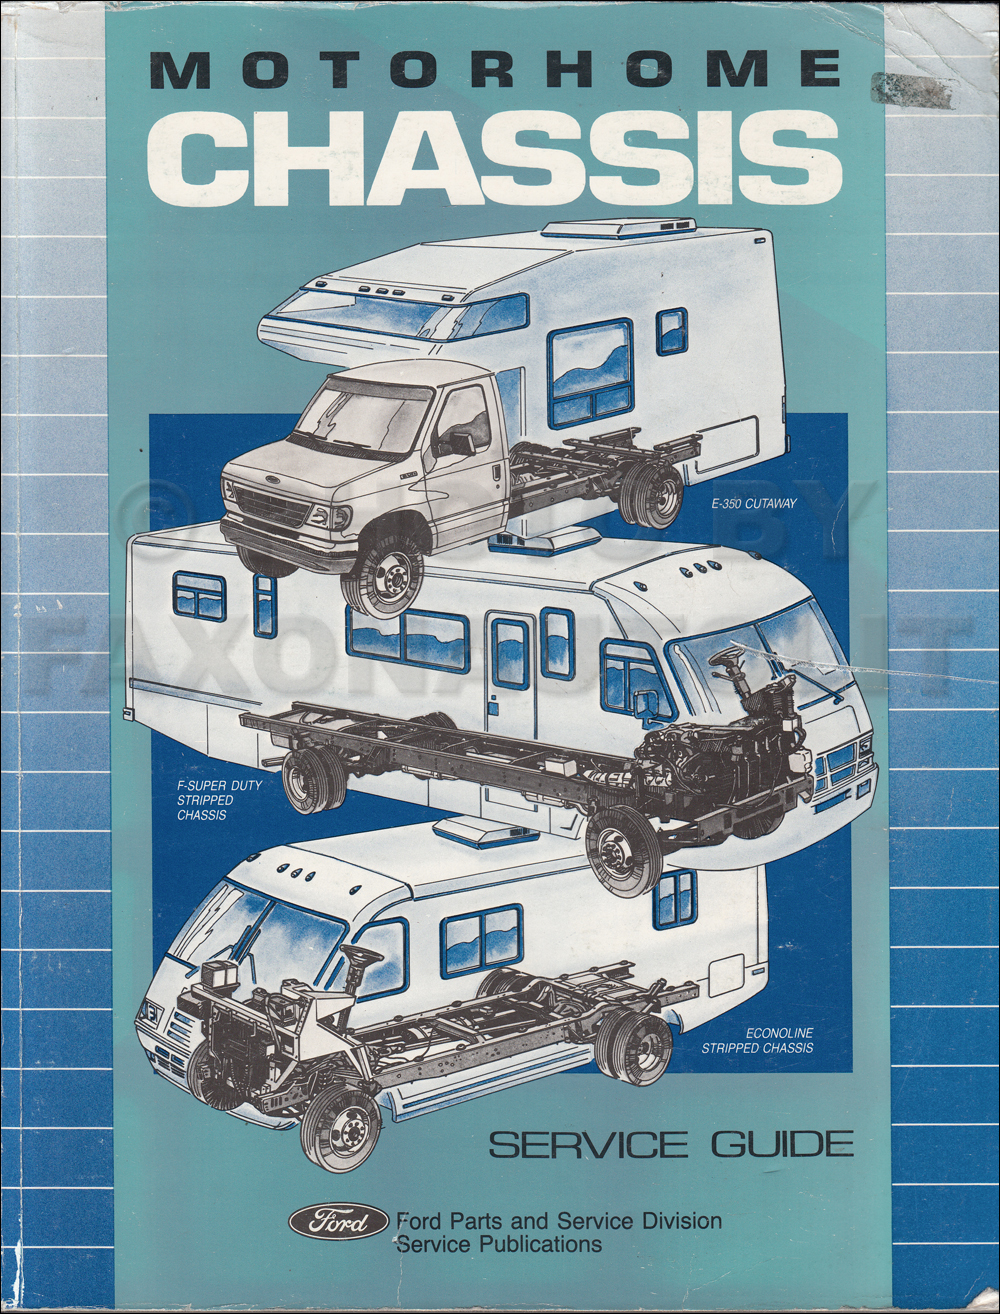 ford motorhome chassis service guide original